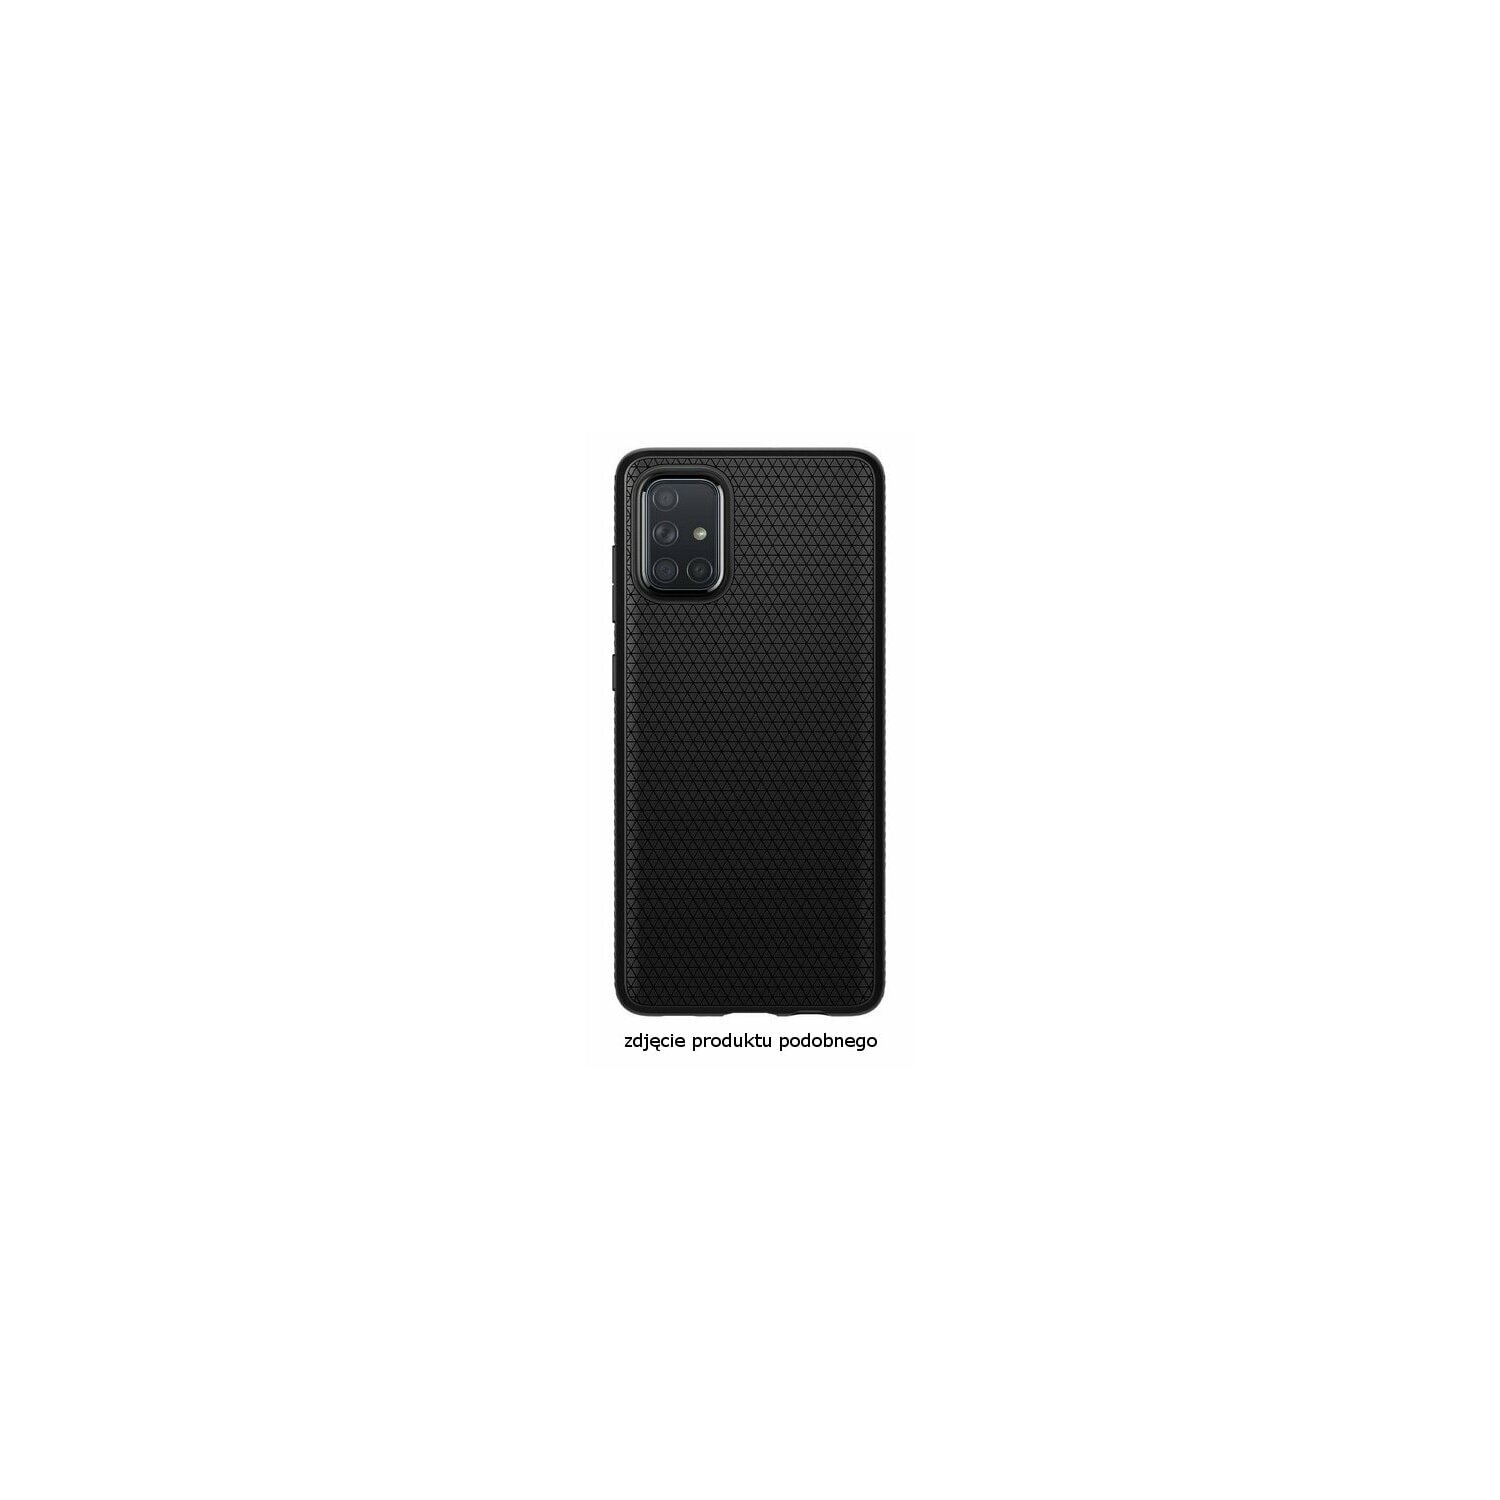 Etui na smartfon SPIGEN Liquid Air do Samsung Galaxy S20 Ultra Czarny matowy 39166